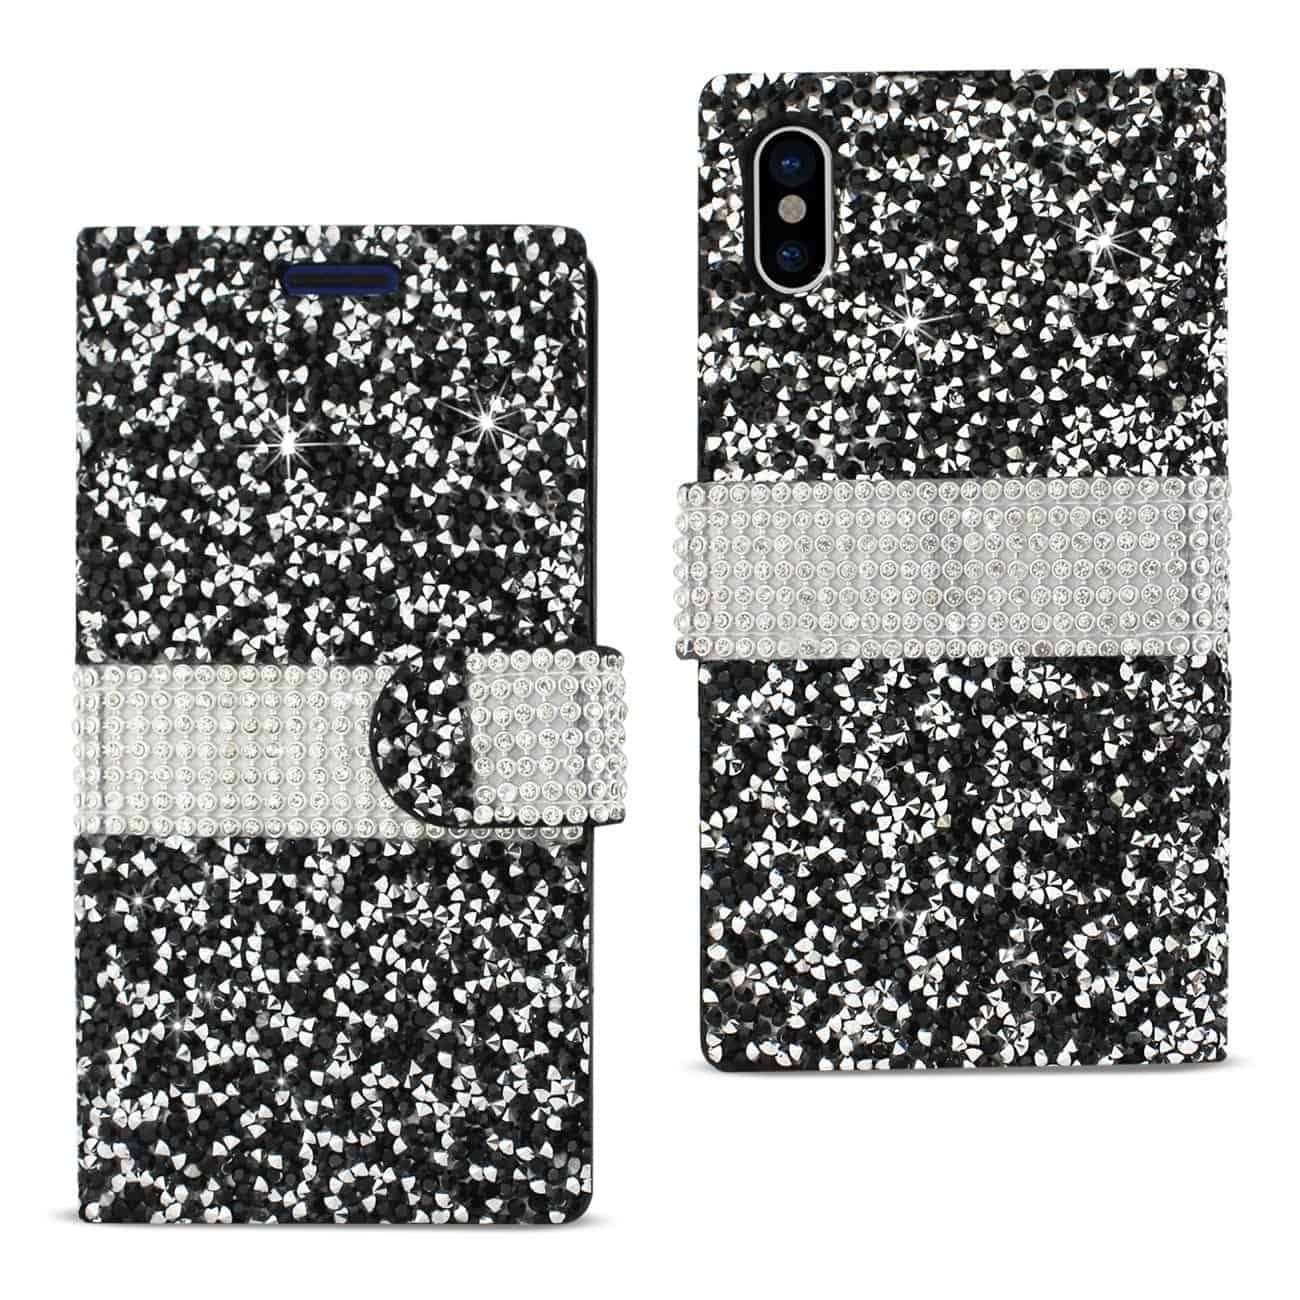 IPHONE X DIAMOND RHINESTONE WALLET CASE IN BLACK